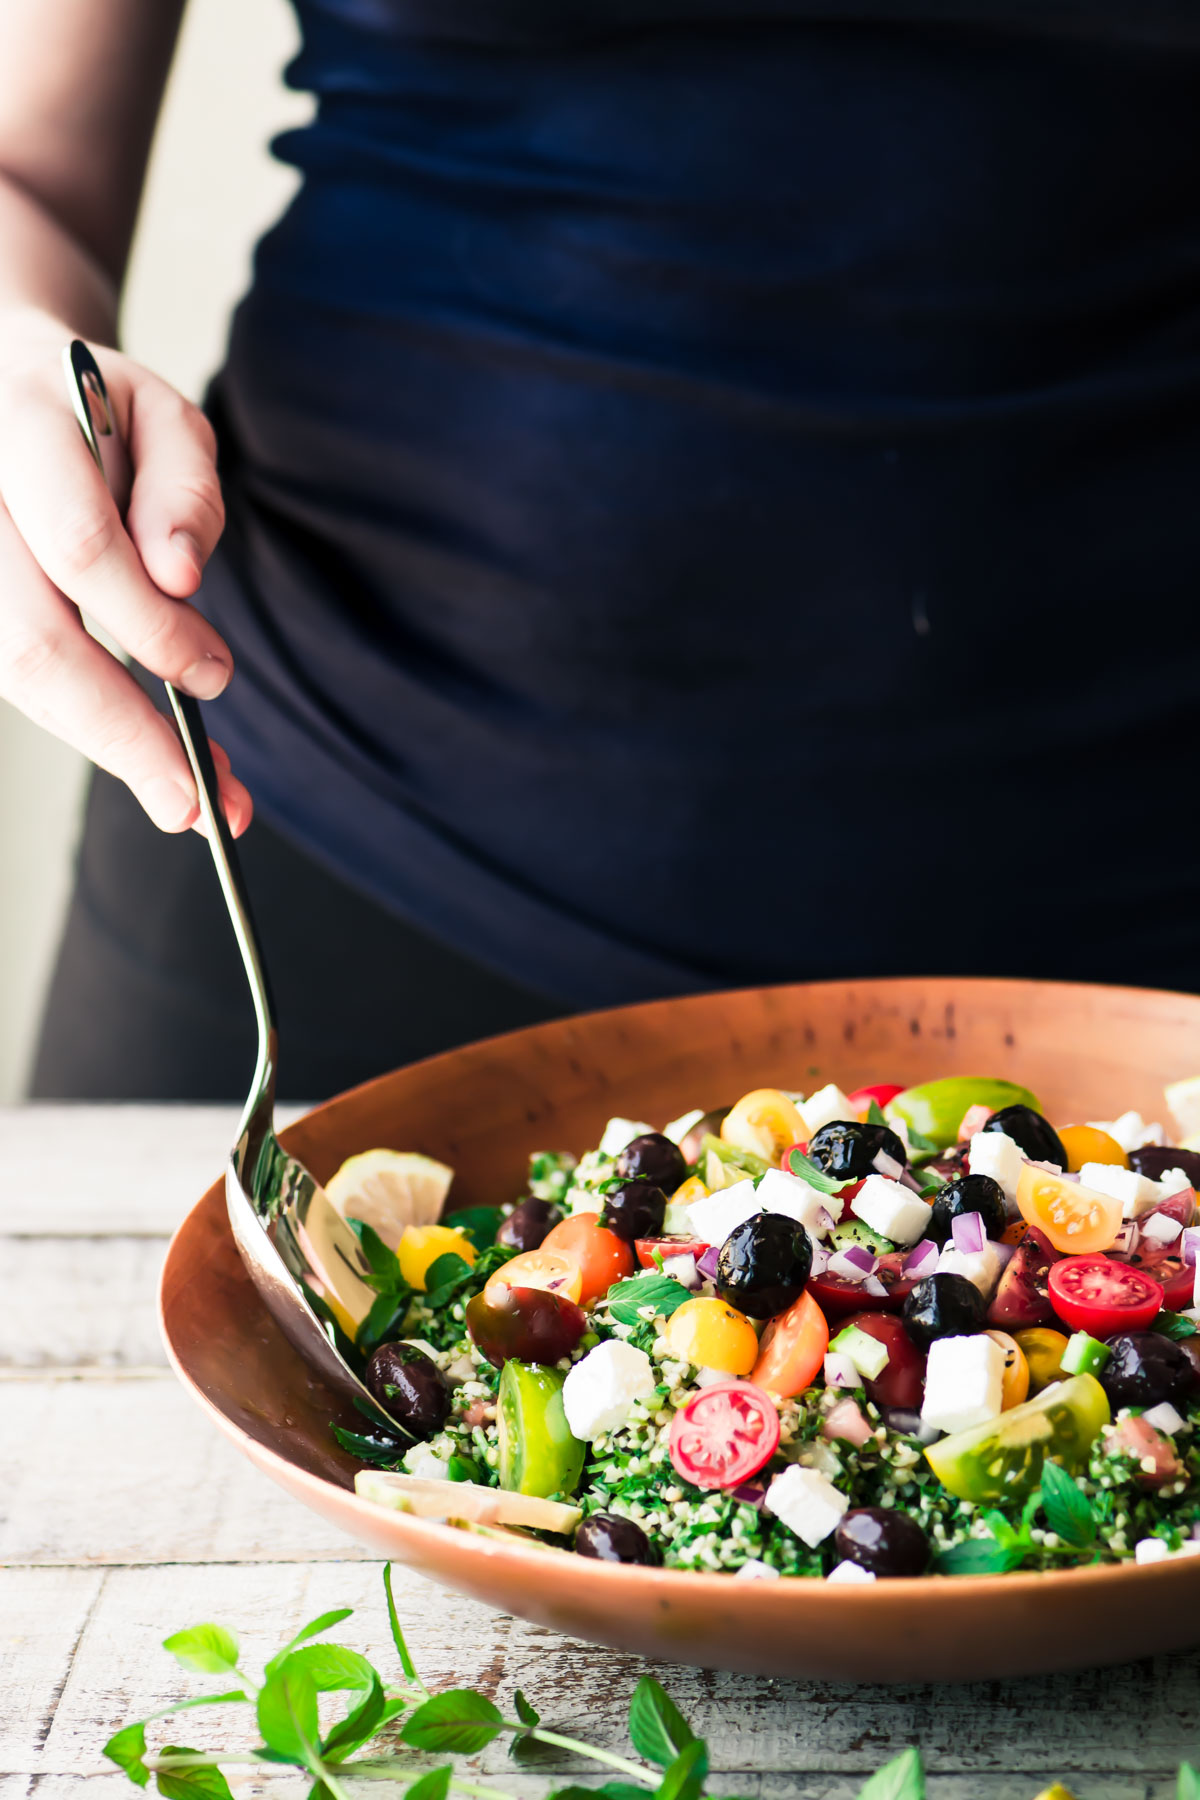 tossing a tabbouleh salad